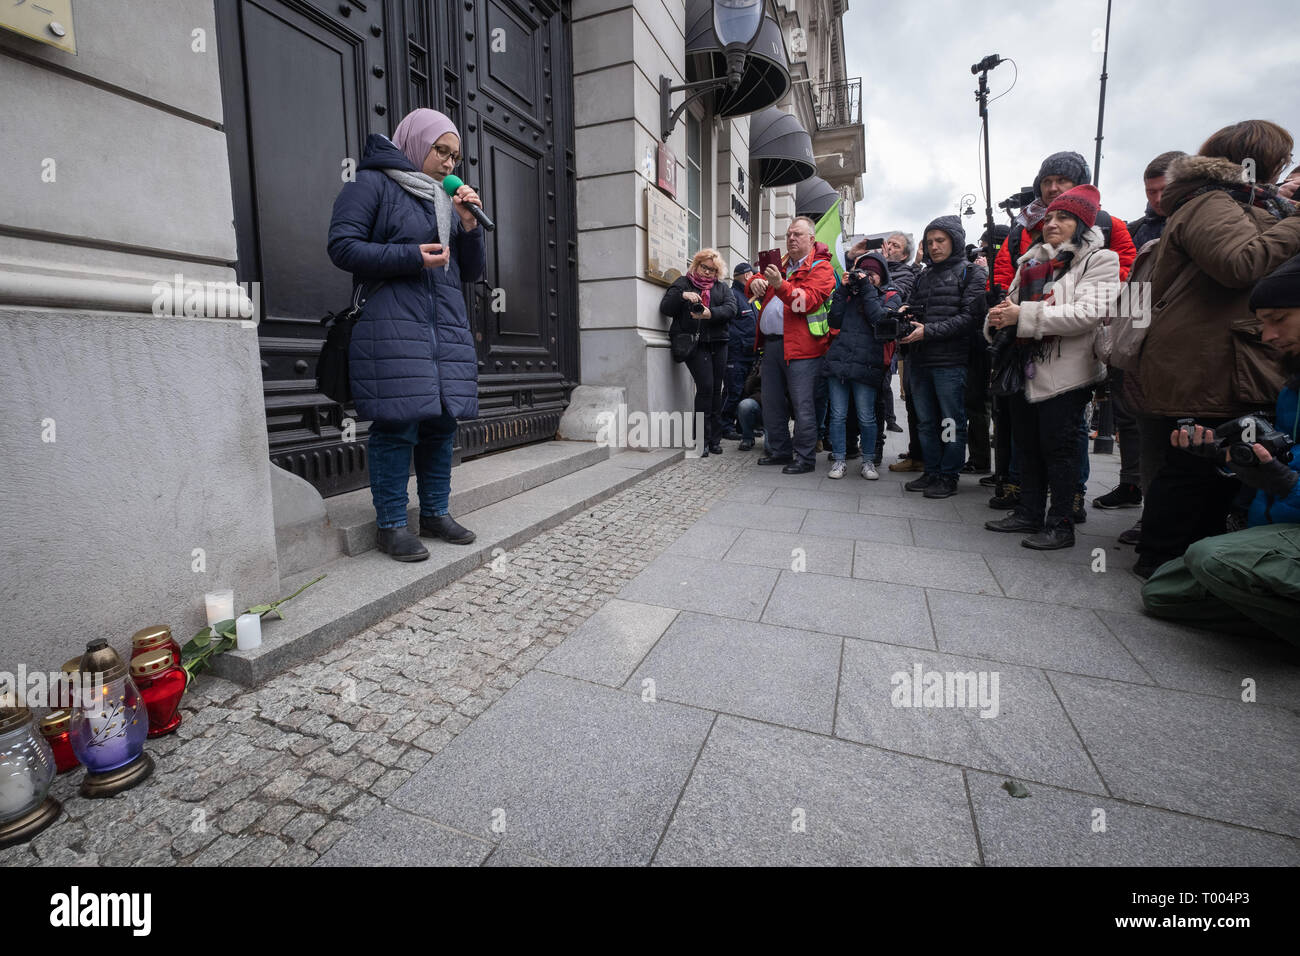 Warsaw, Poland. 16th March, 2019. Muslim prayers at the door od New Zealand embassy in Warsaw. Anti racist demonstration announced few weeks ago, due to tragic coincidence is also becoming a tribute to victims of terror attack in New Zealand. Antifascist and anti racist Polish organizations, collectives and NGO protest against any form of discrimination and growing wave and xenophobia and violence against immigrants. Robert Pastryk / Alamy Live News - Stock Image